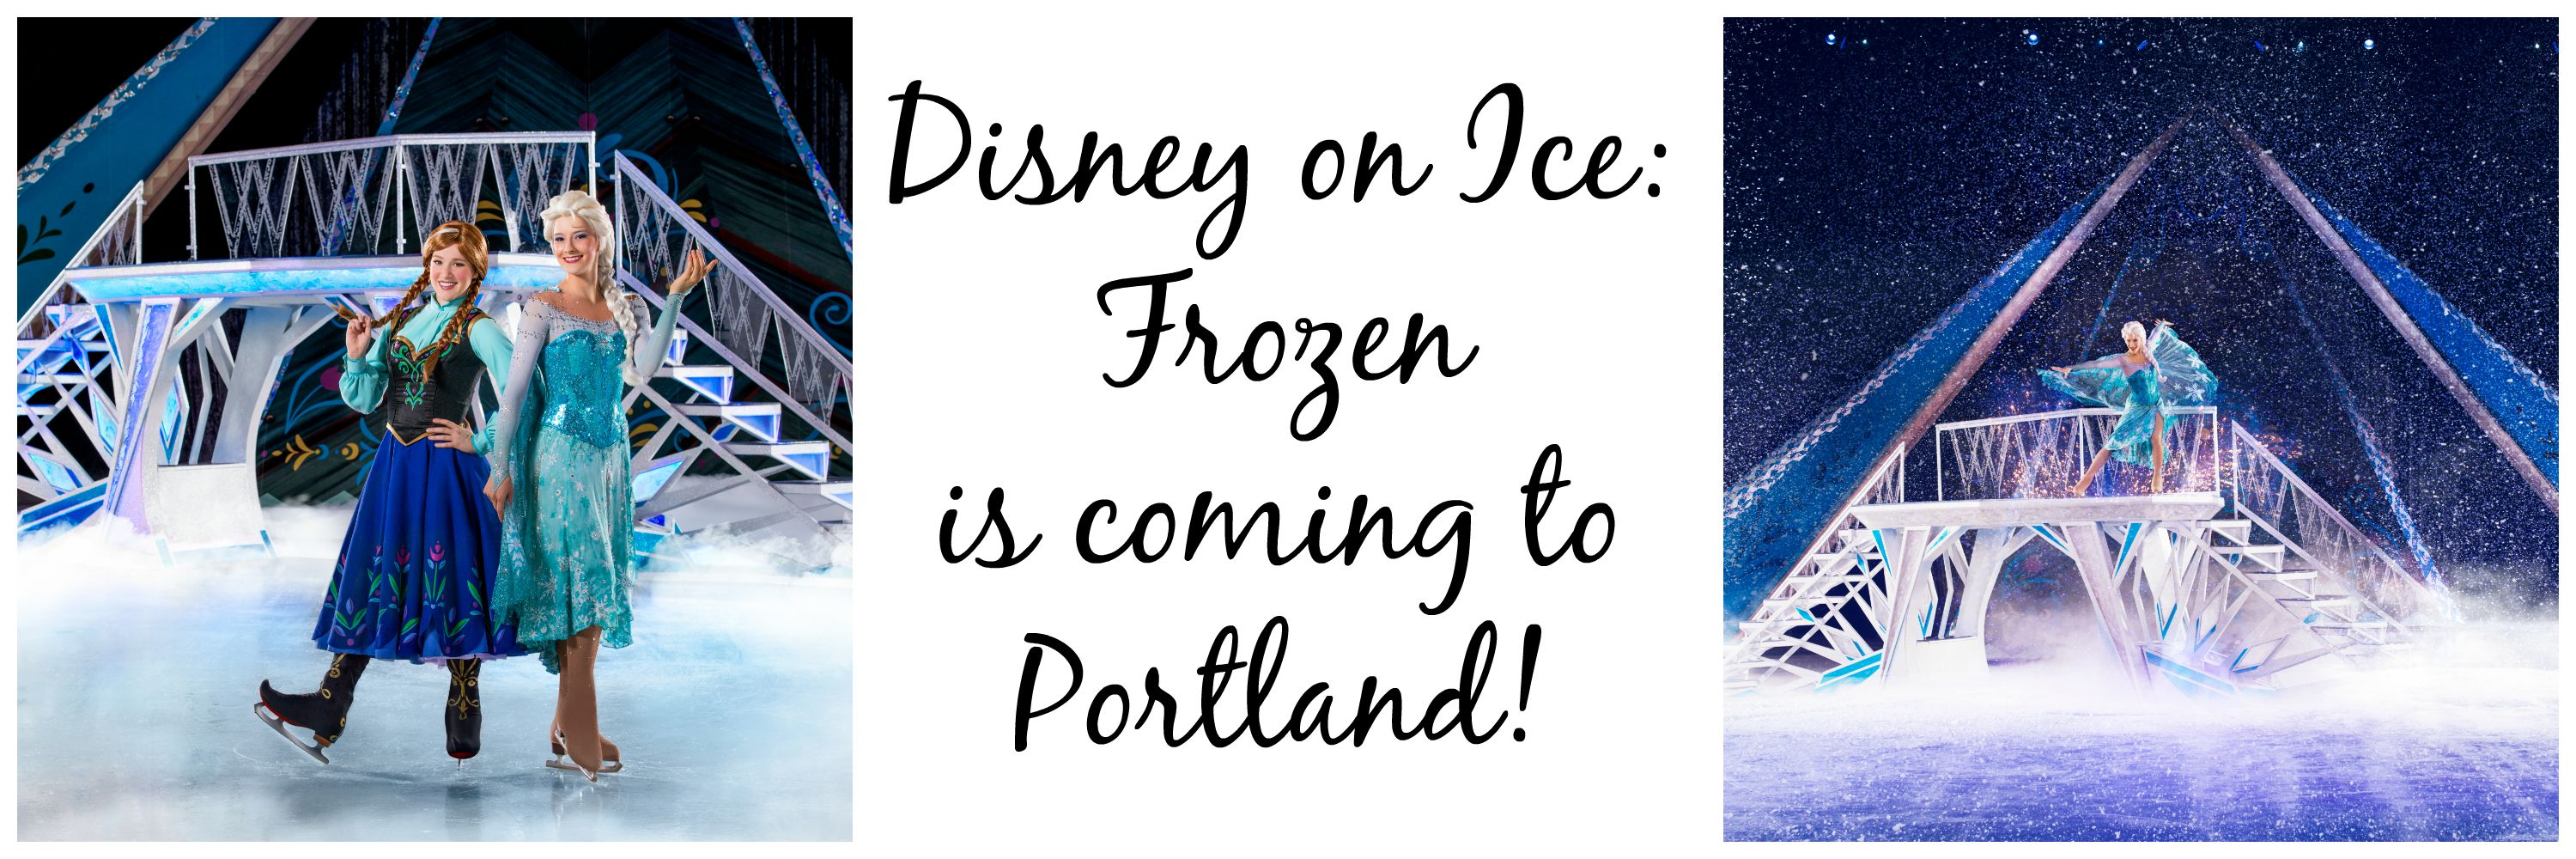 Disney On Ice: Frozen is coming to Portland!